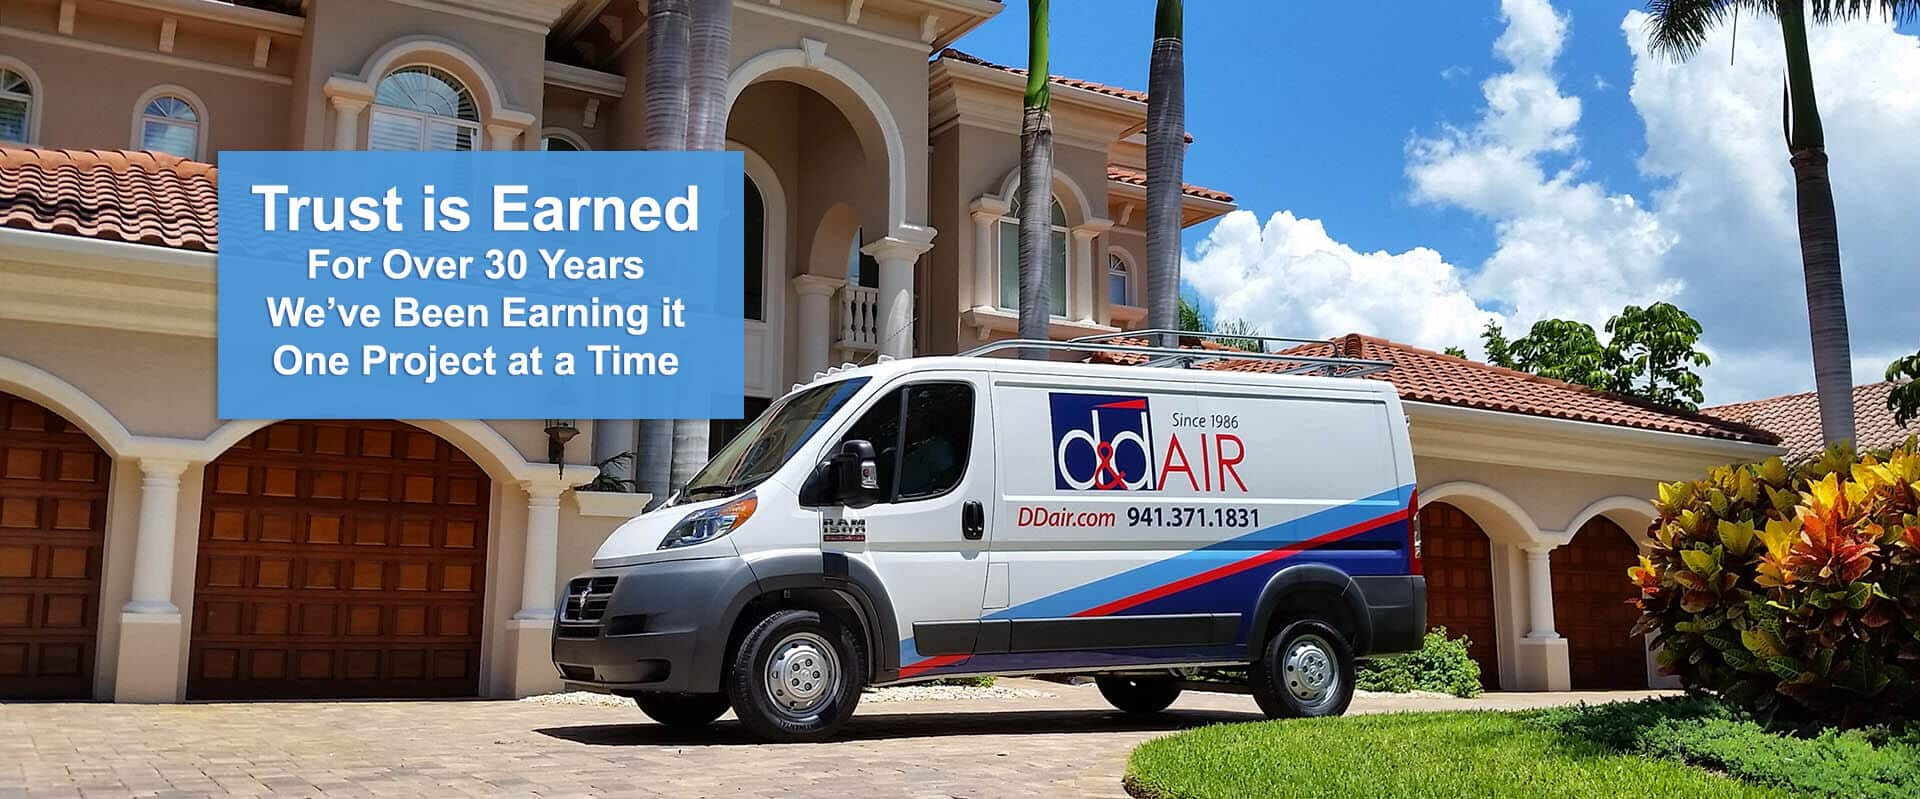 A Trusted Sarasota Air Conditioning Service & Repair Company for Over 30 Years